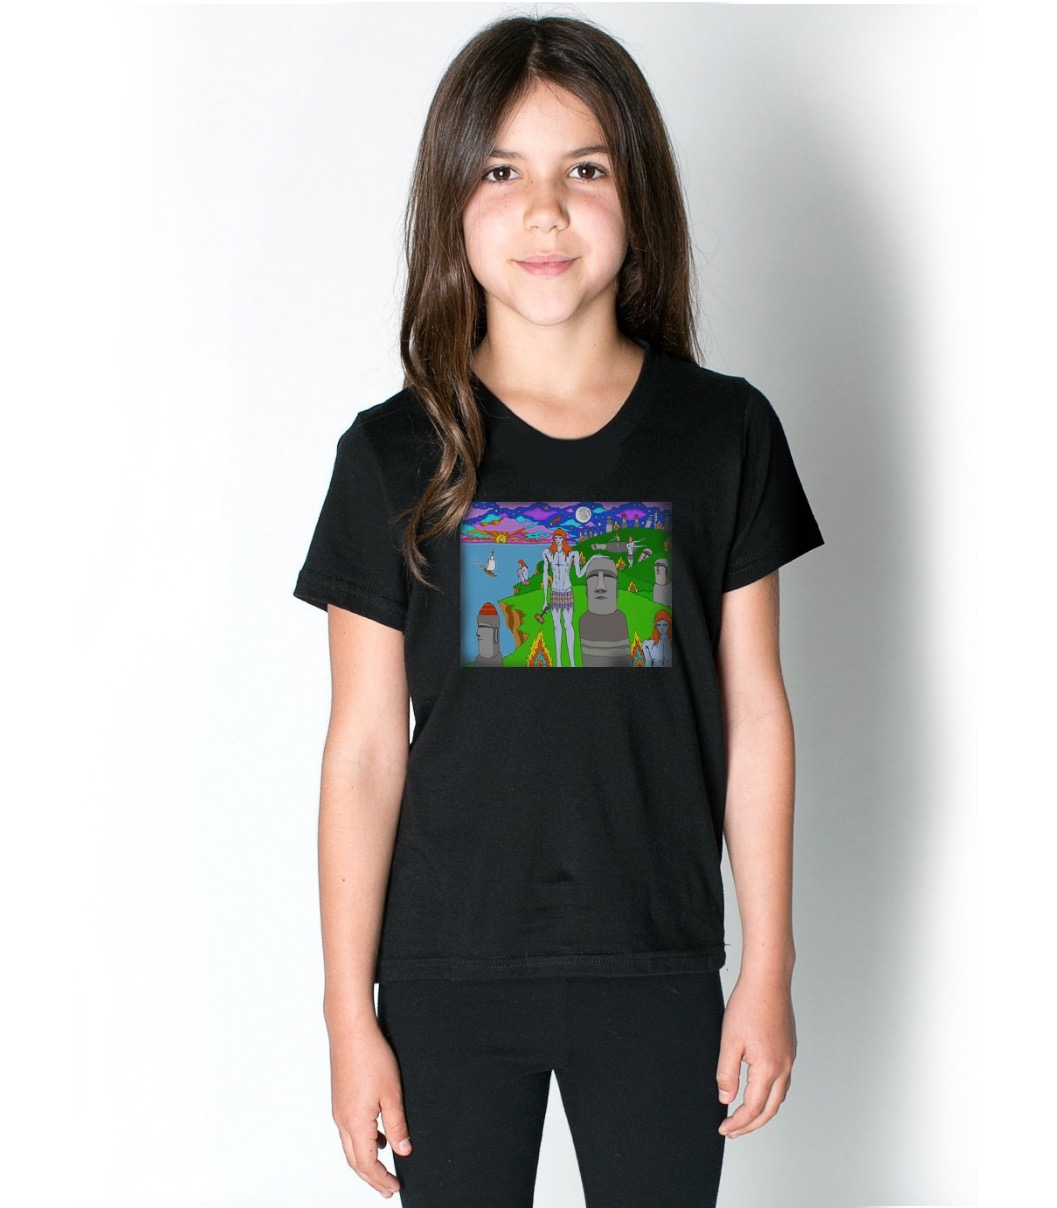 15-Off-White-Women-s-Black-Embroidered-T-Shirt-1 copy 50.jpg